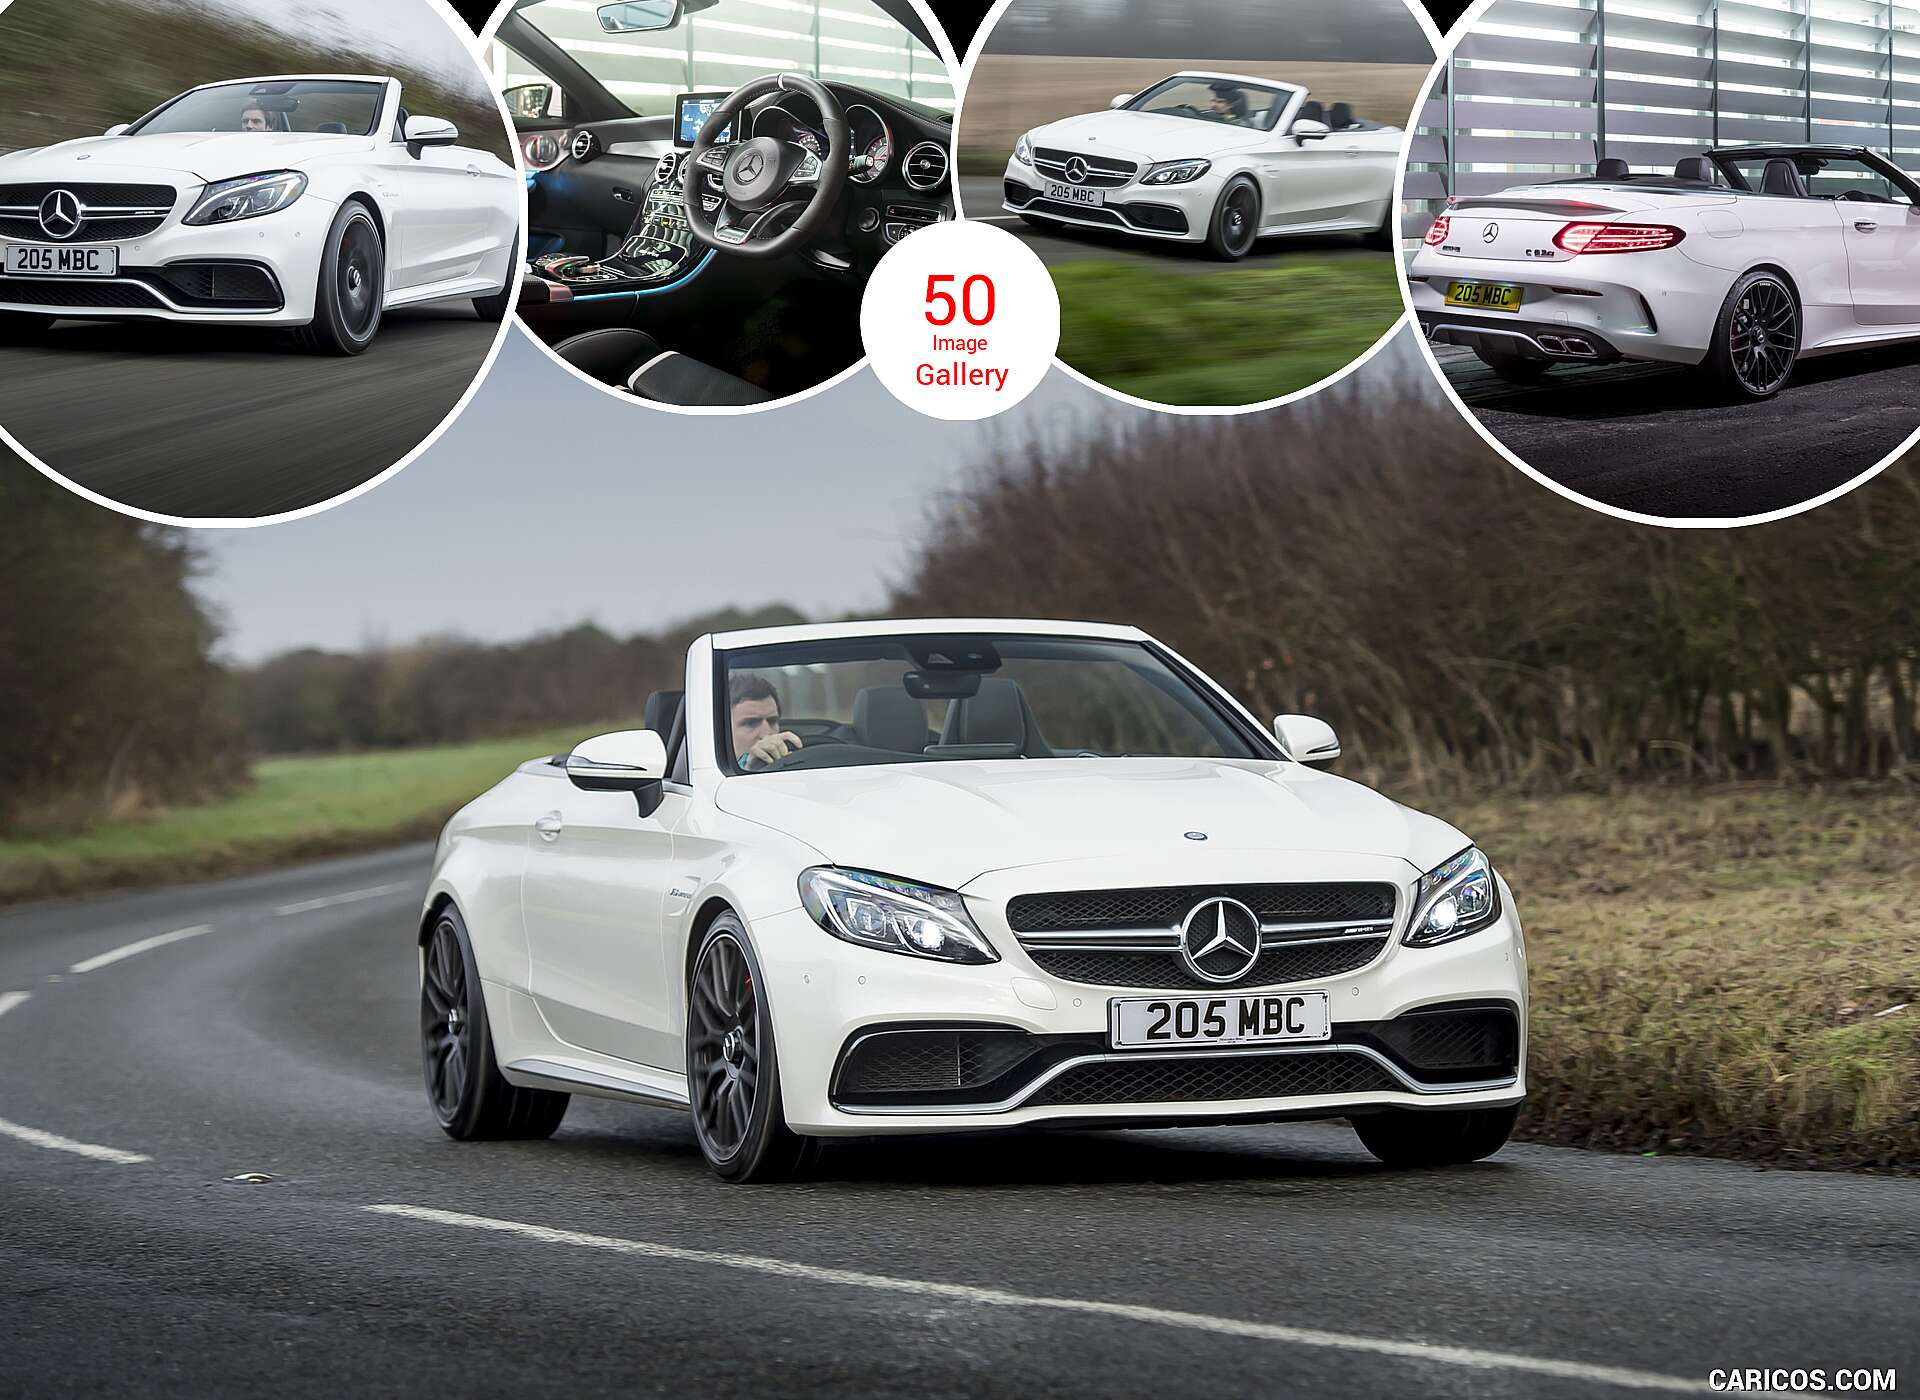 2017 Mercedes-AMG C63 S Cabriolet (UK-Spec)